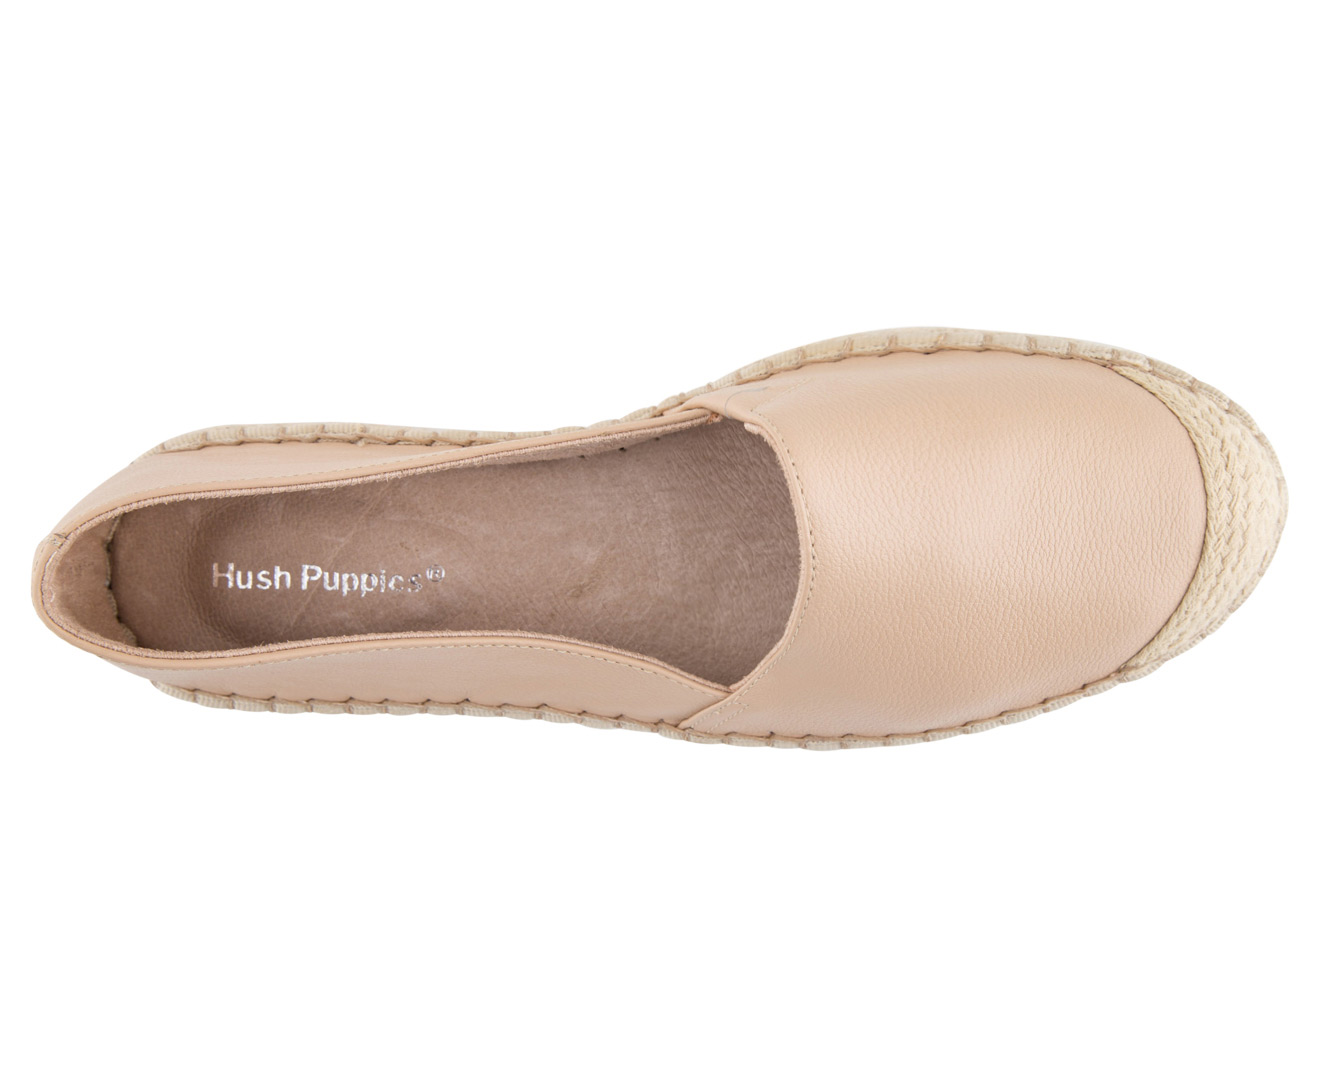 Hush Puppies Women s Hope Flats - Nude Leather  3571243c81